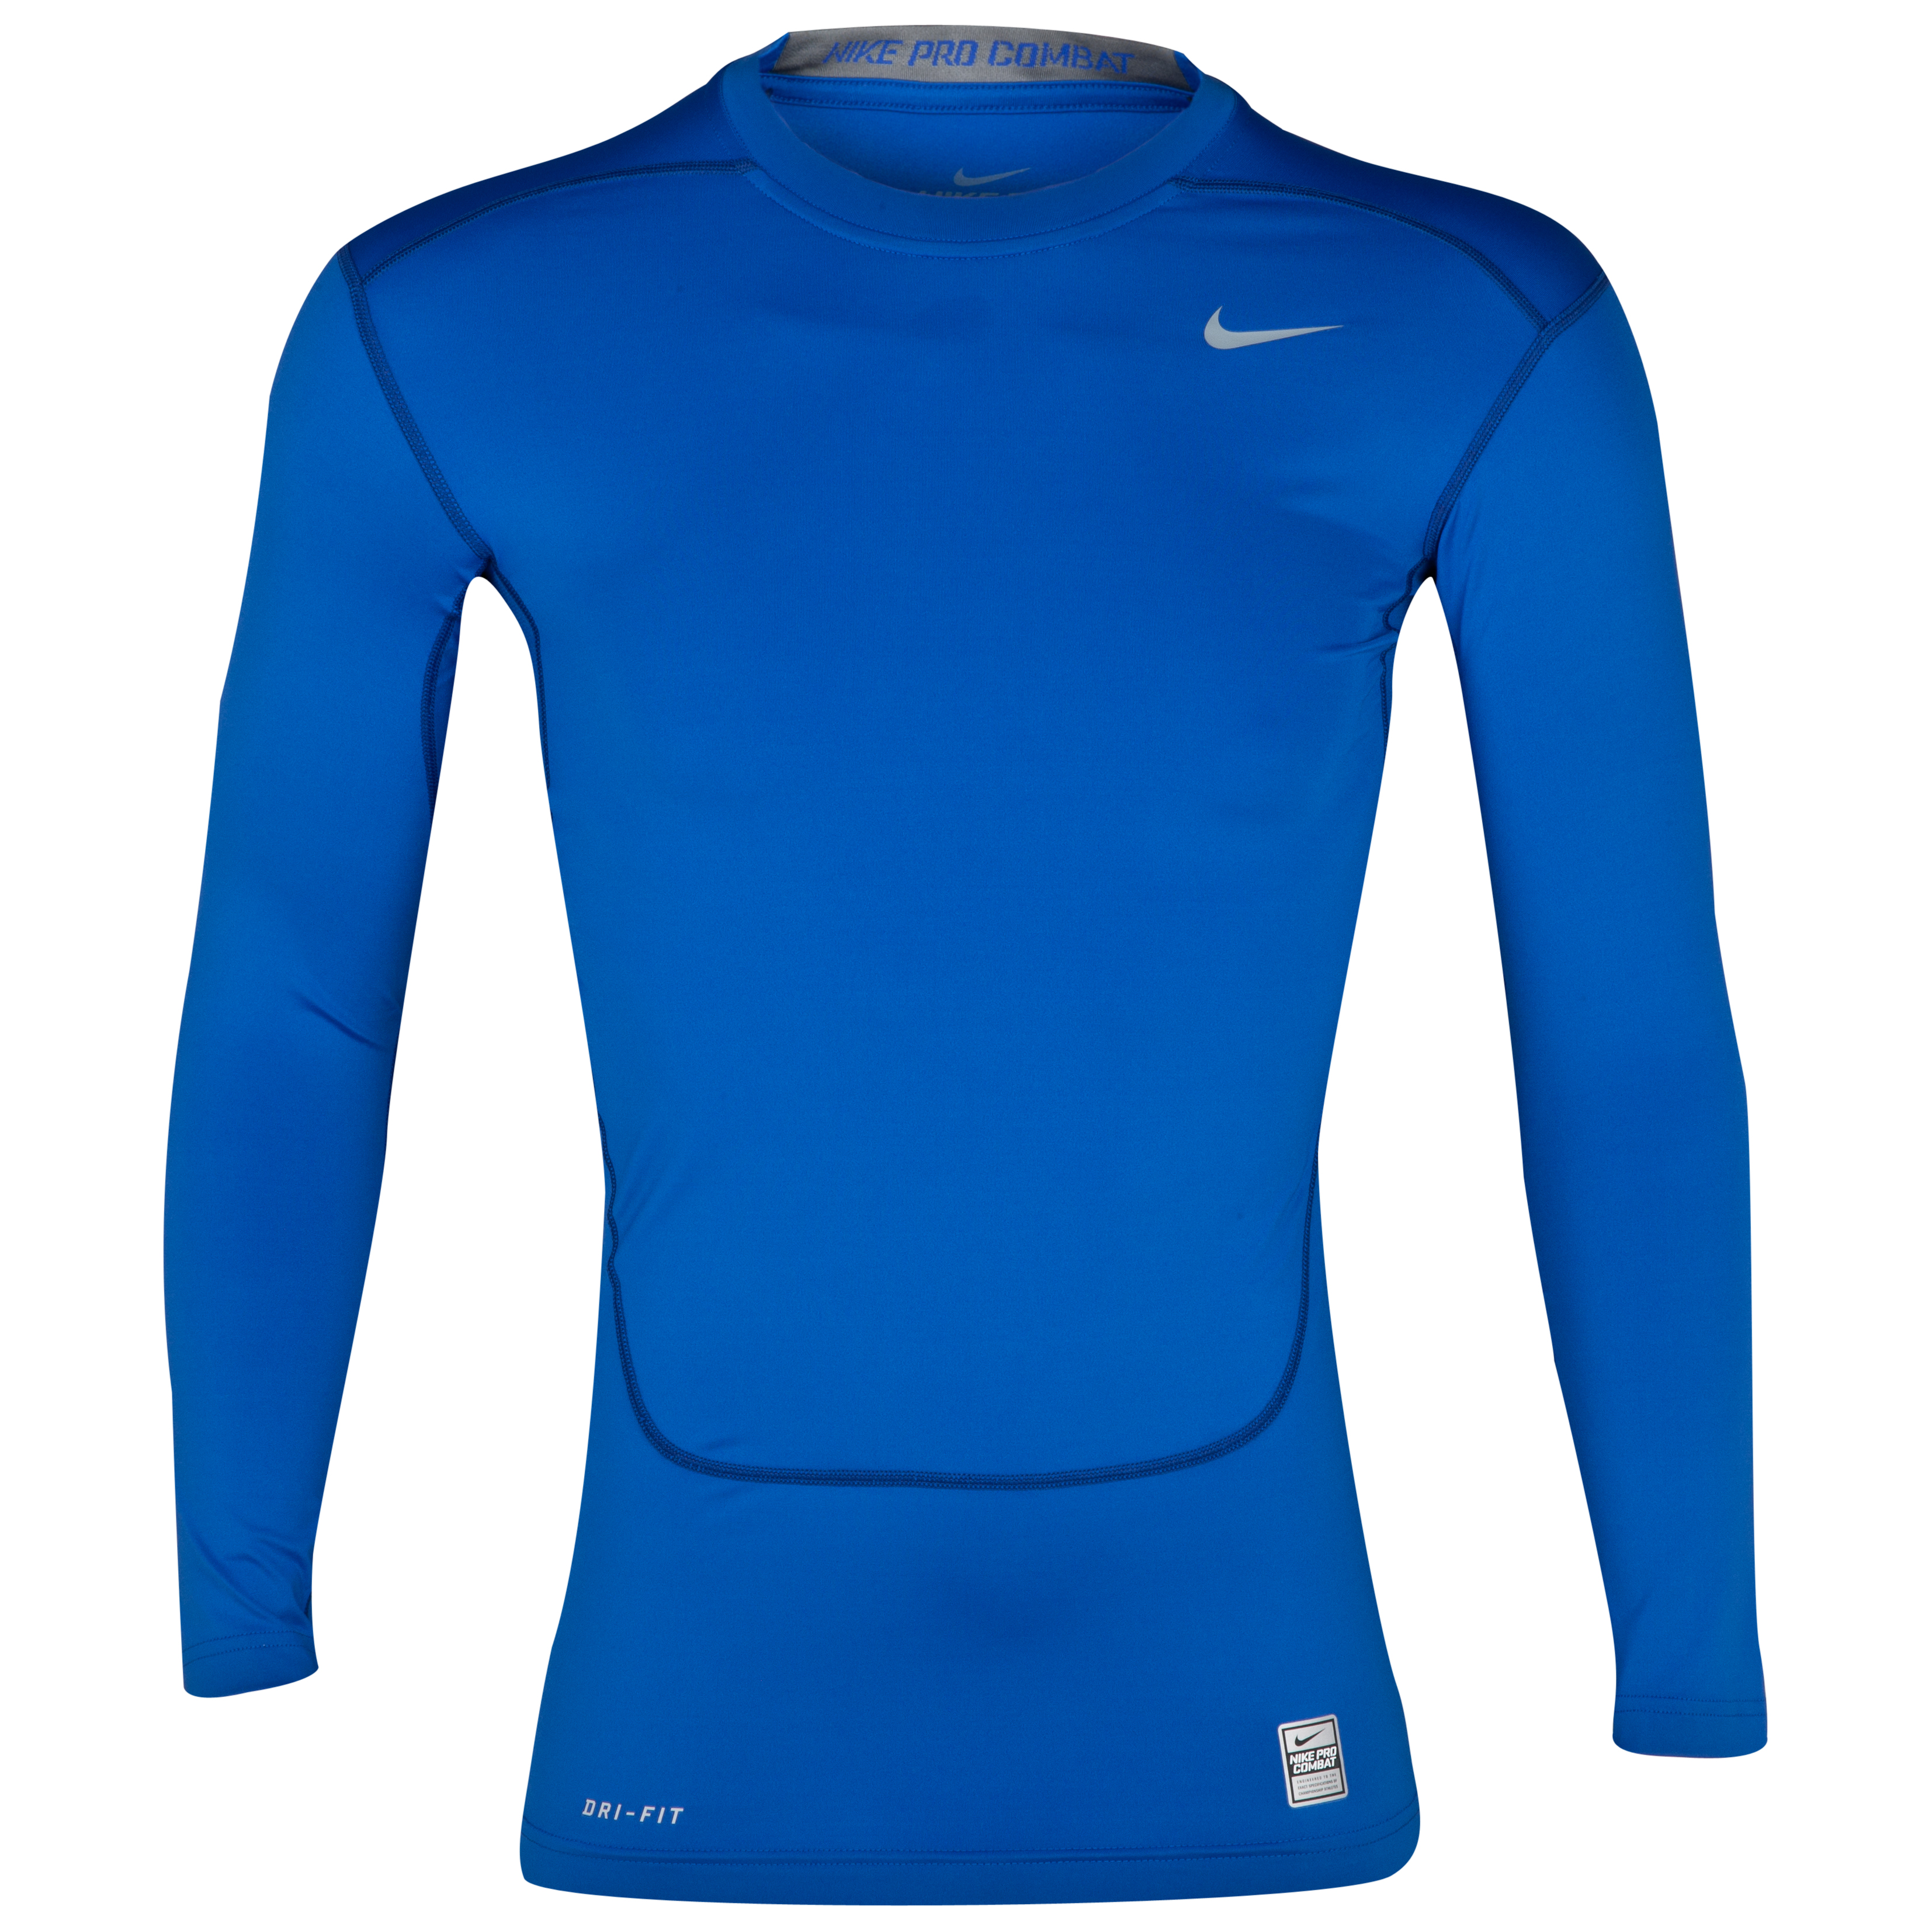 Nike Pro Combat Core Base Layer Top - Long Sleeve Blue